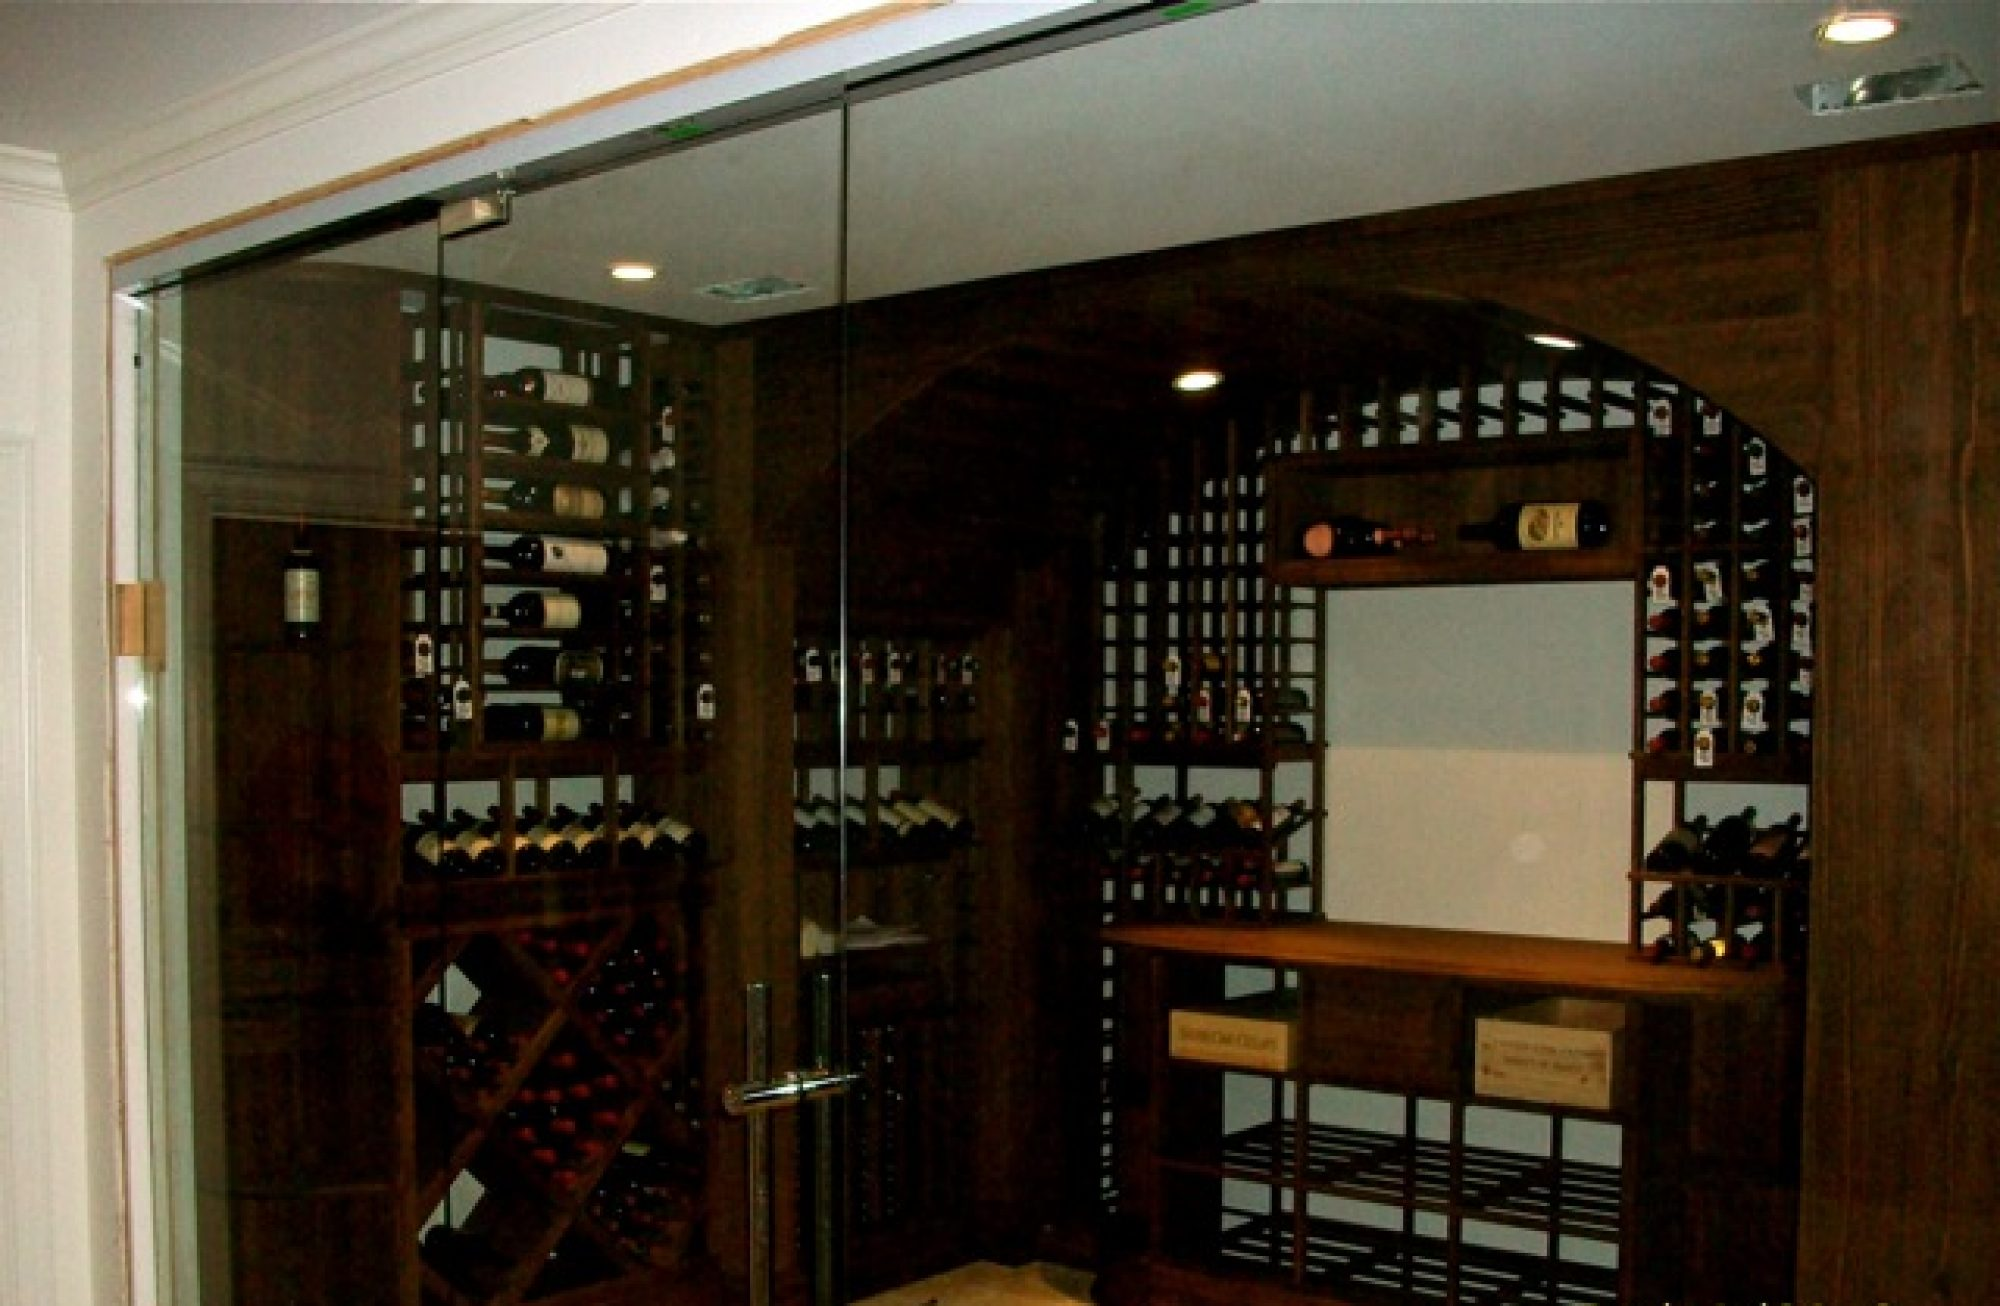 https://yourwinecellarman.com/wp-content/uploads/cropped-completewineroom1-1.jpg